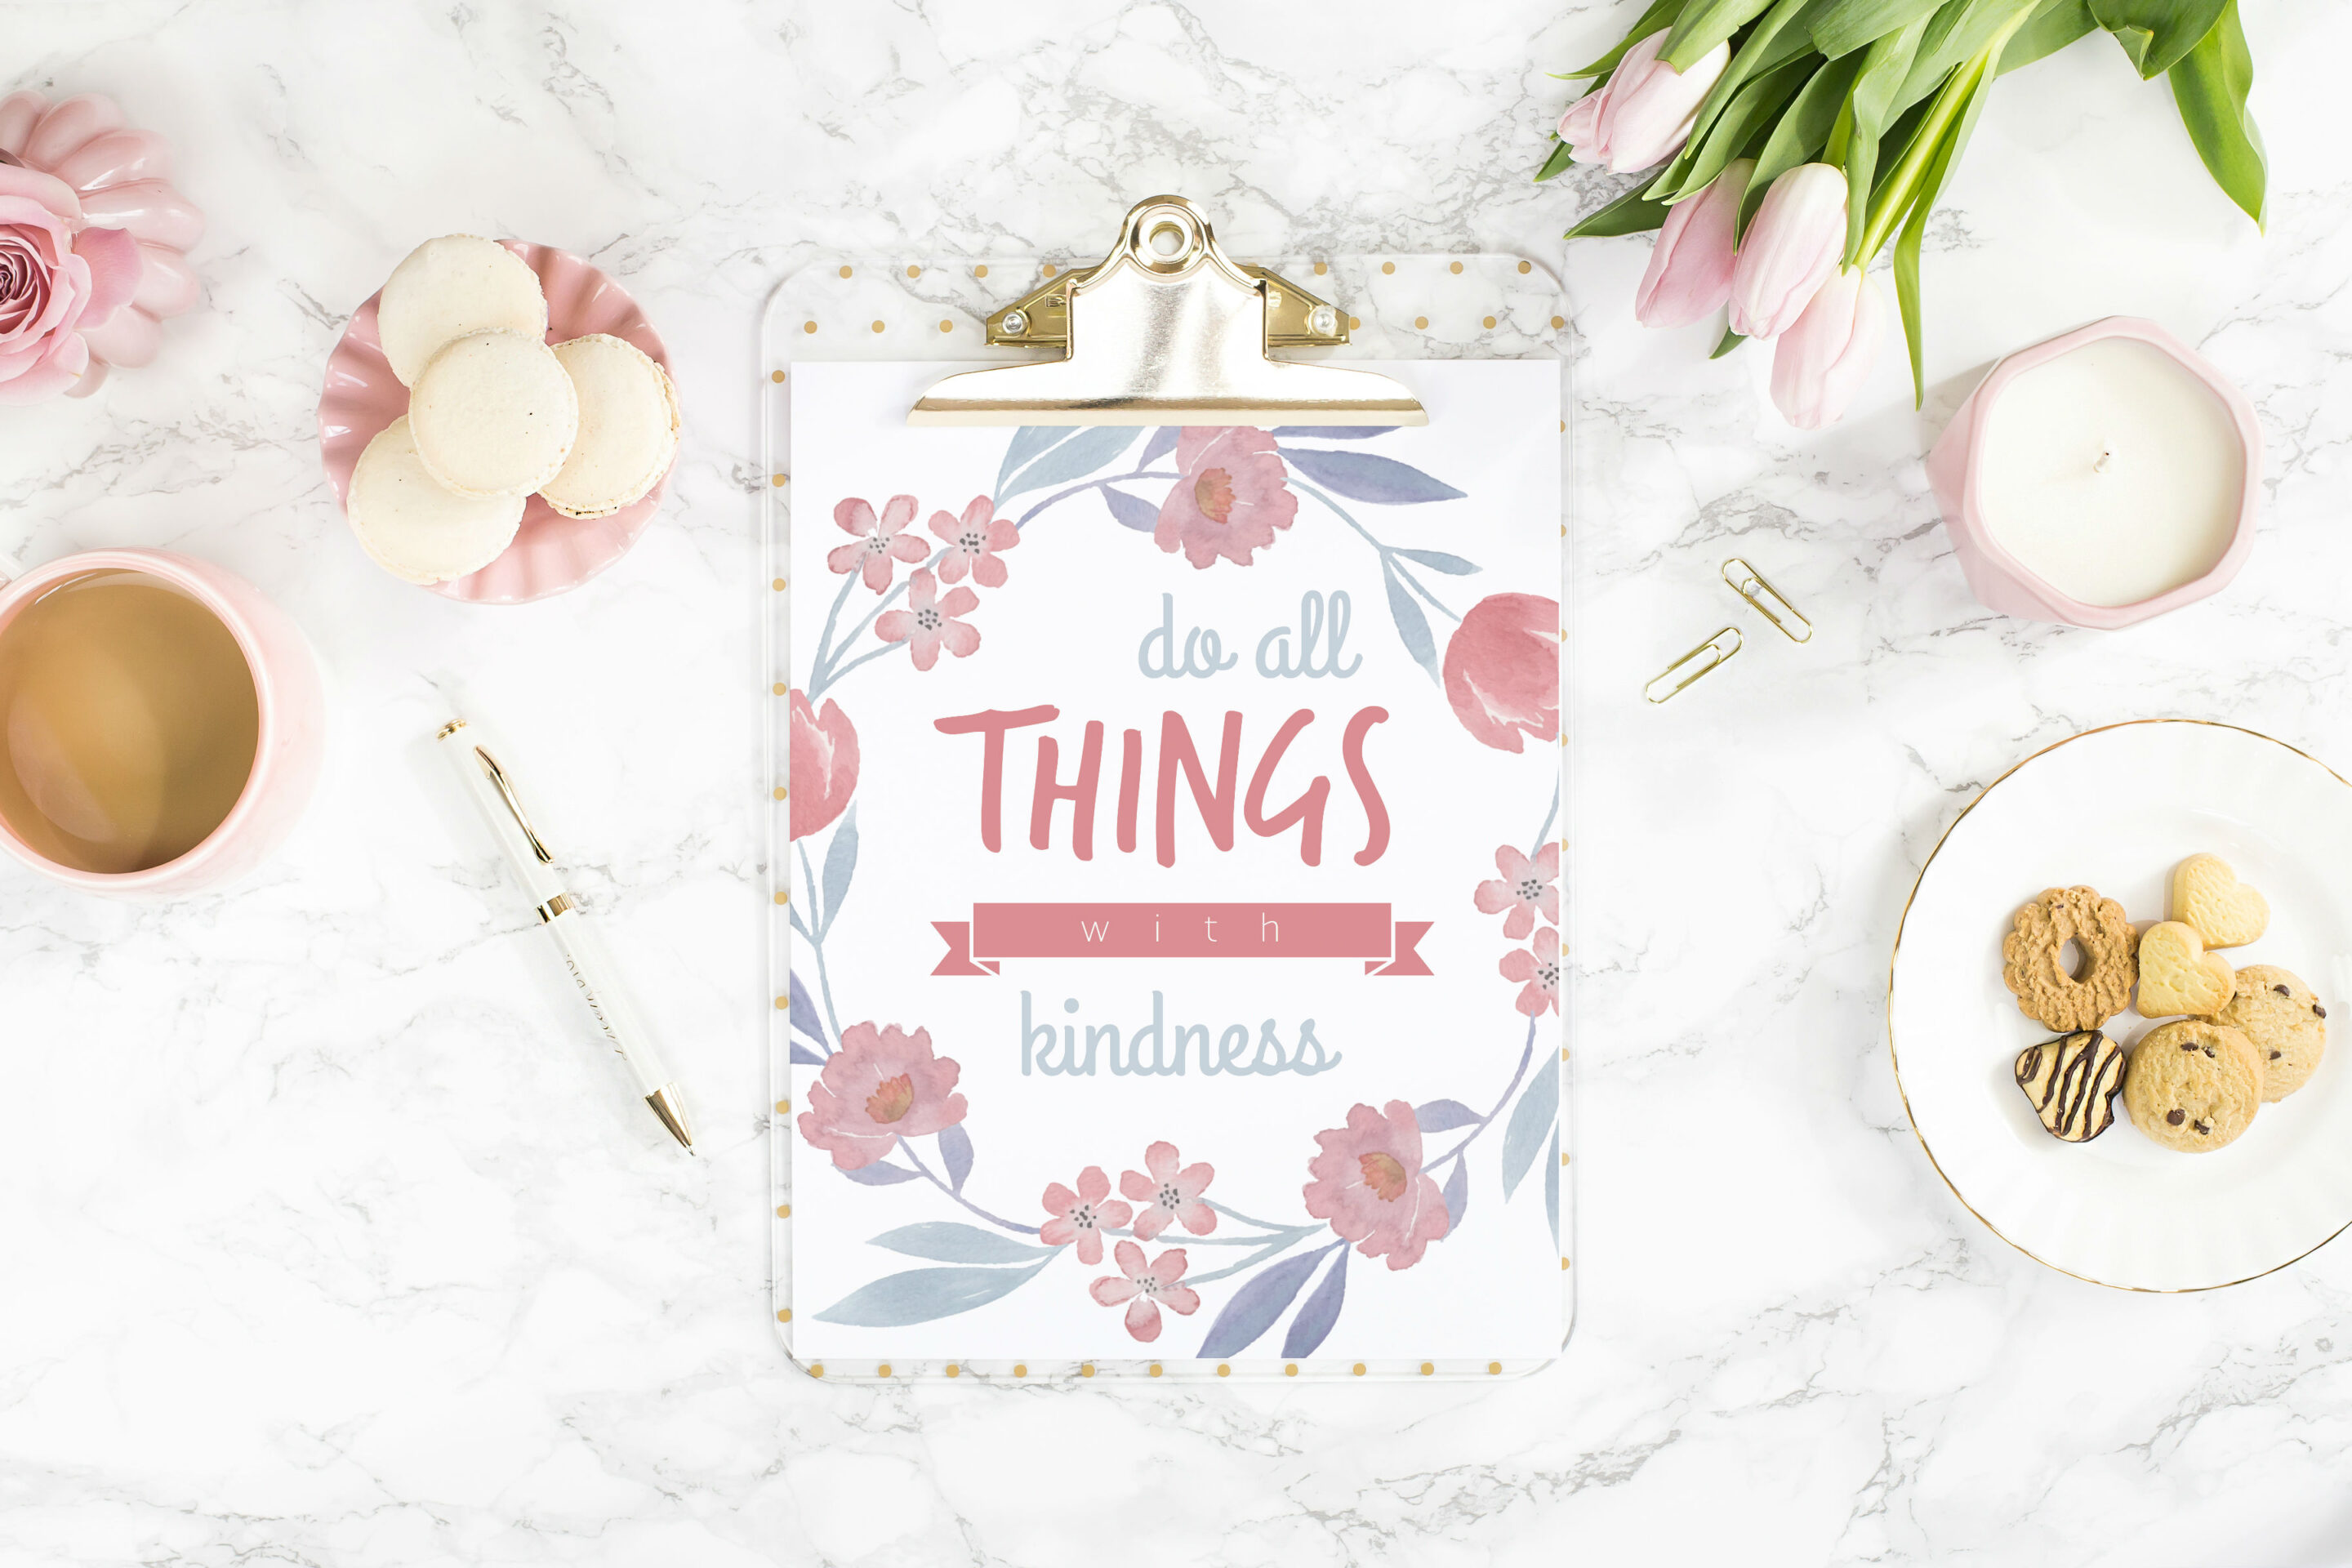 Frame Motivasi Do All Things With Kindness A 56 Putih 2581815 1104180973 by .